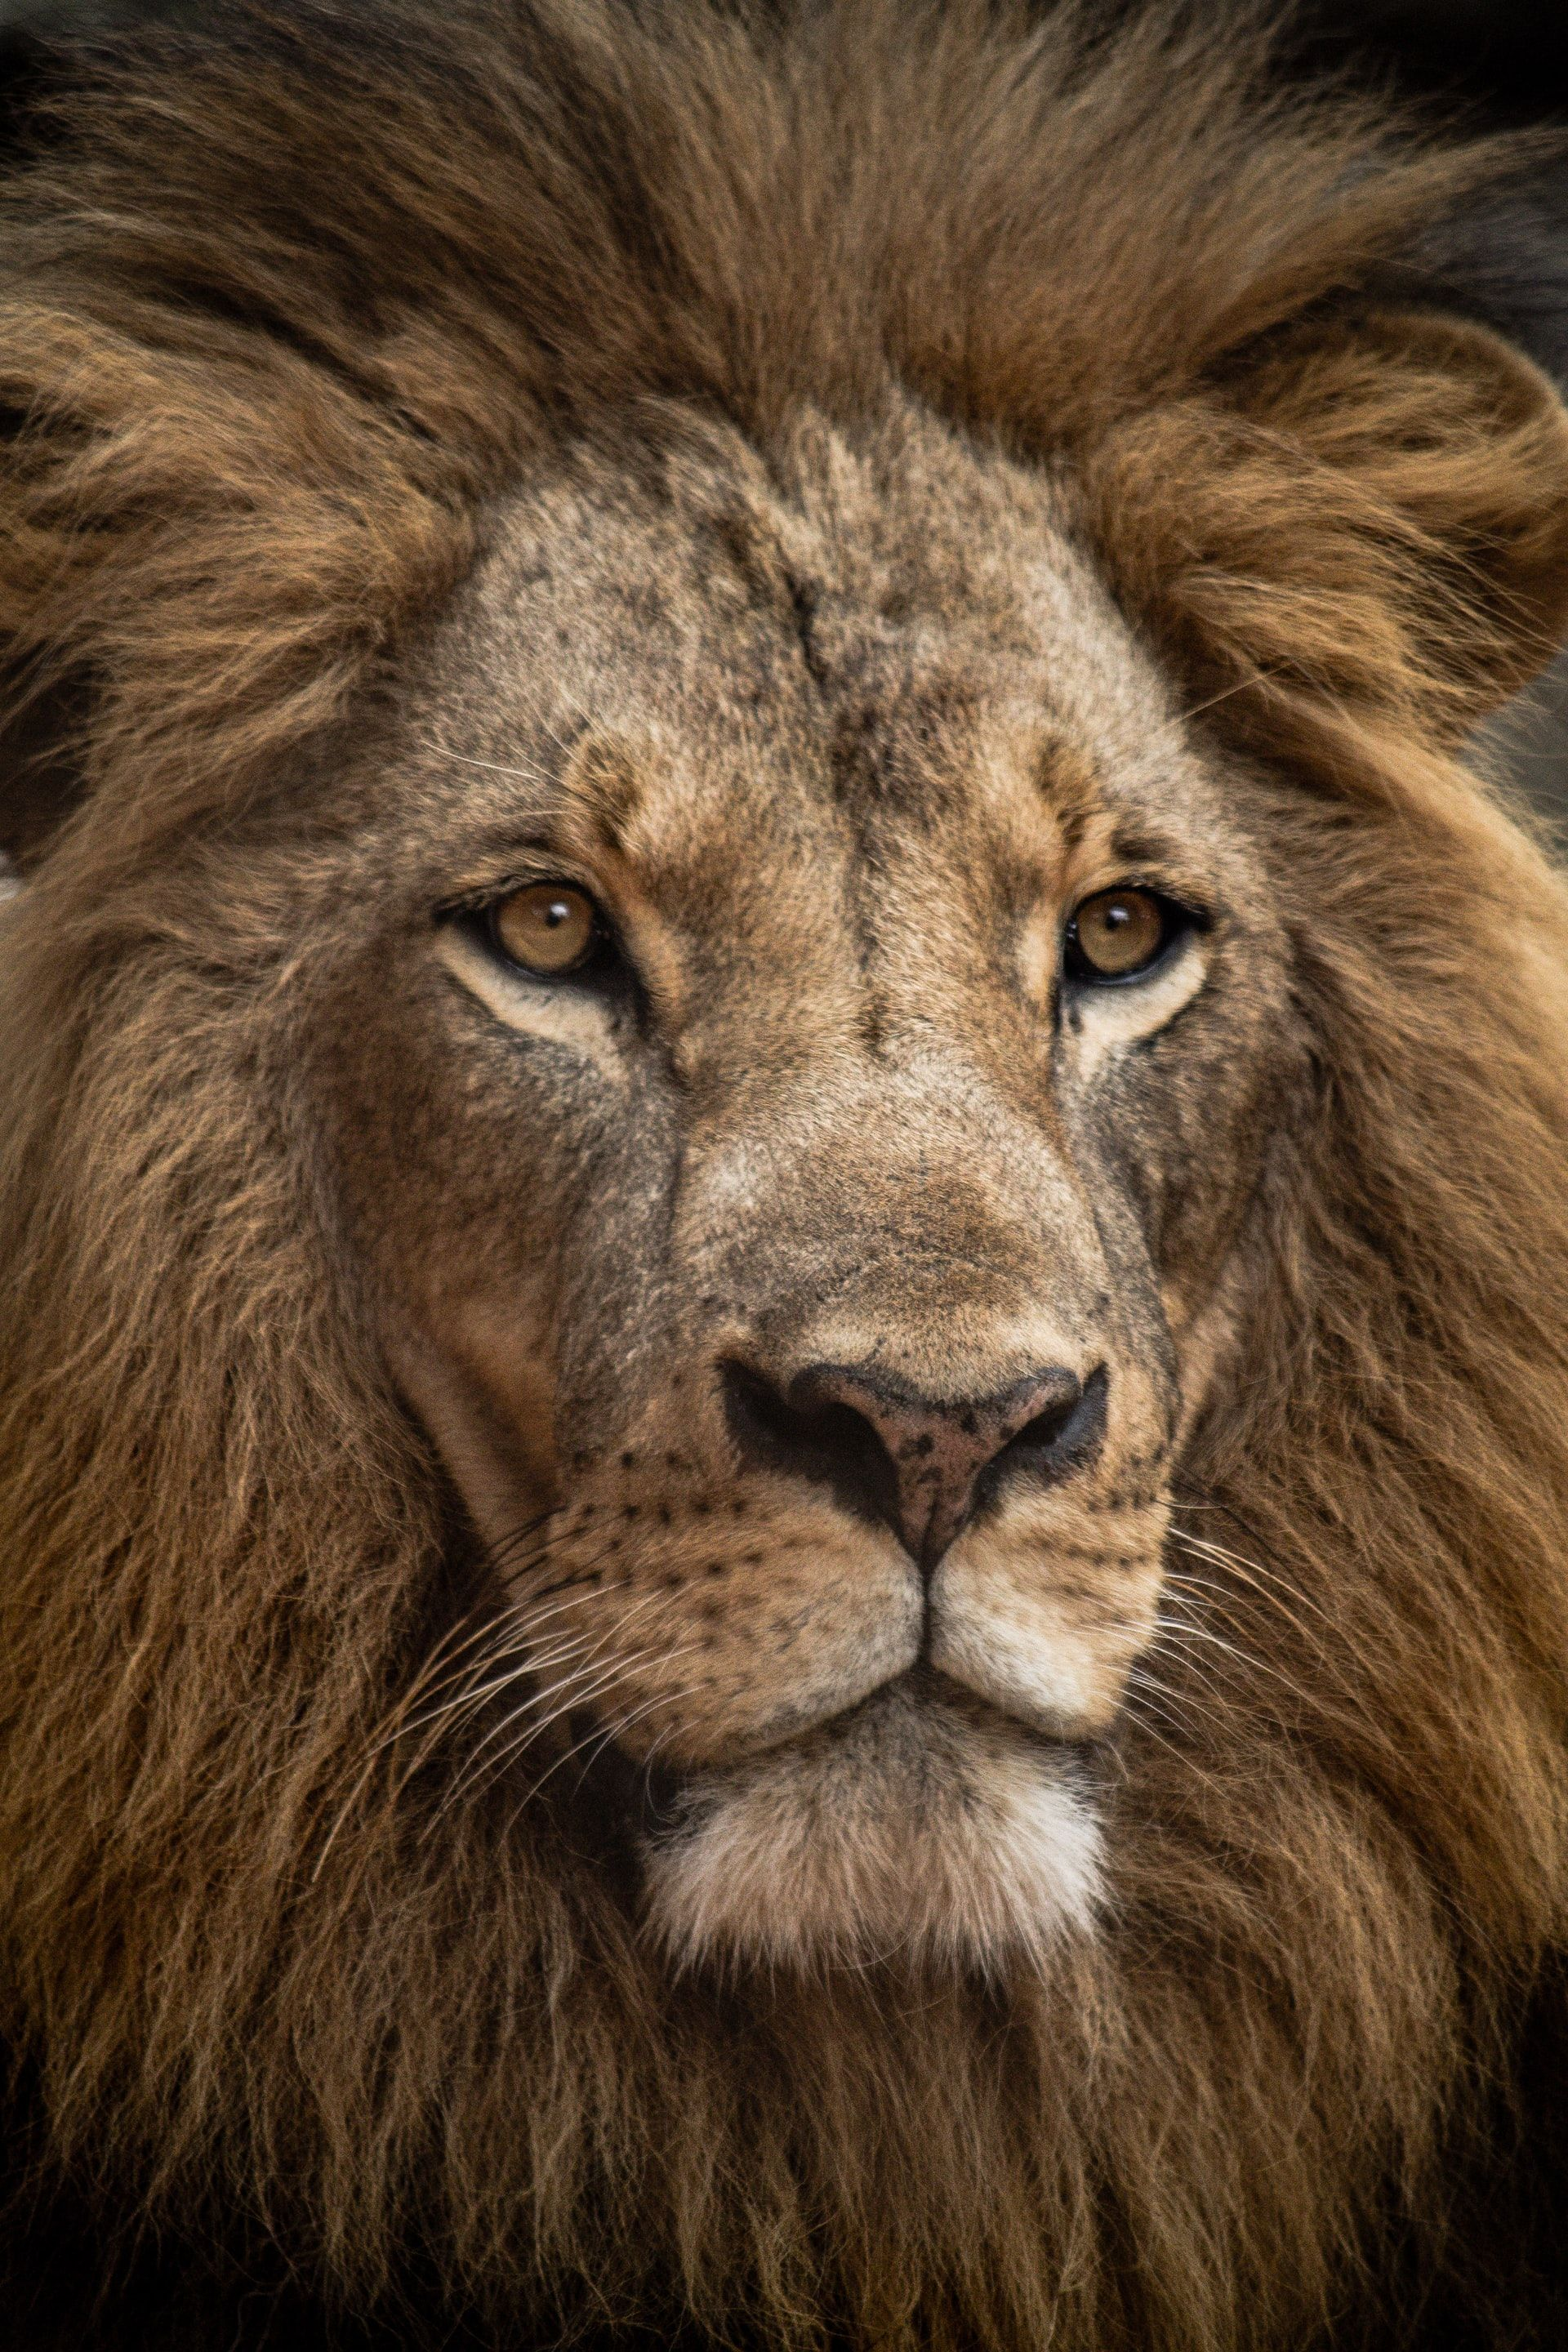 YOU ARE PERFECT: Listen to the lion within